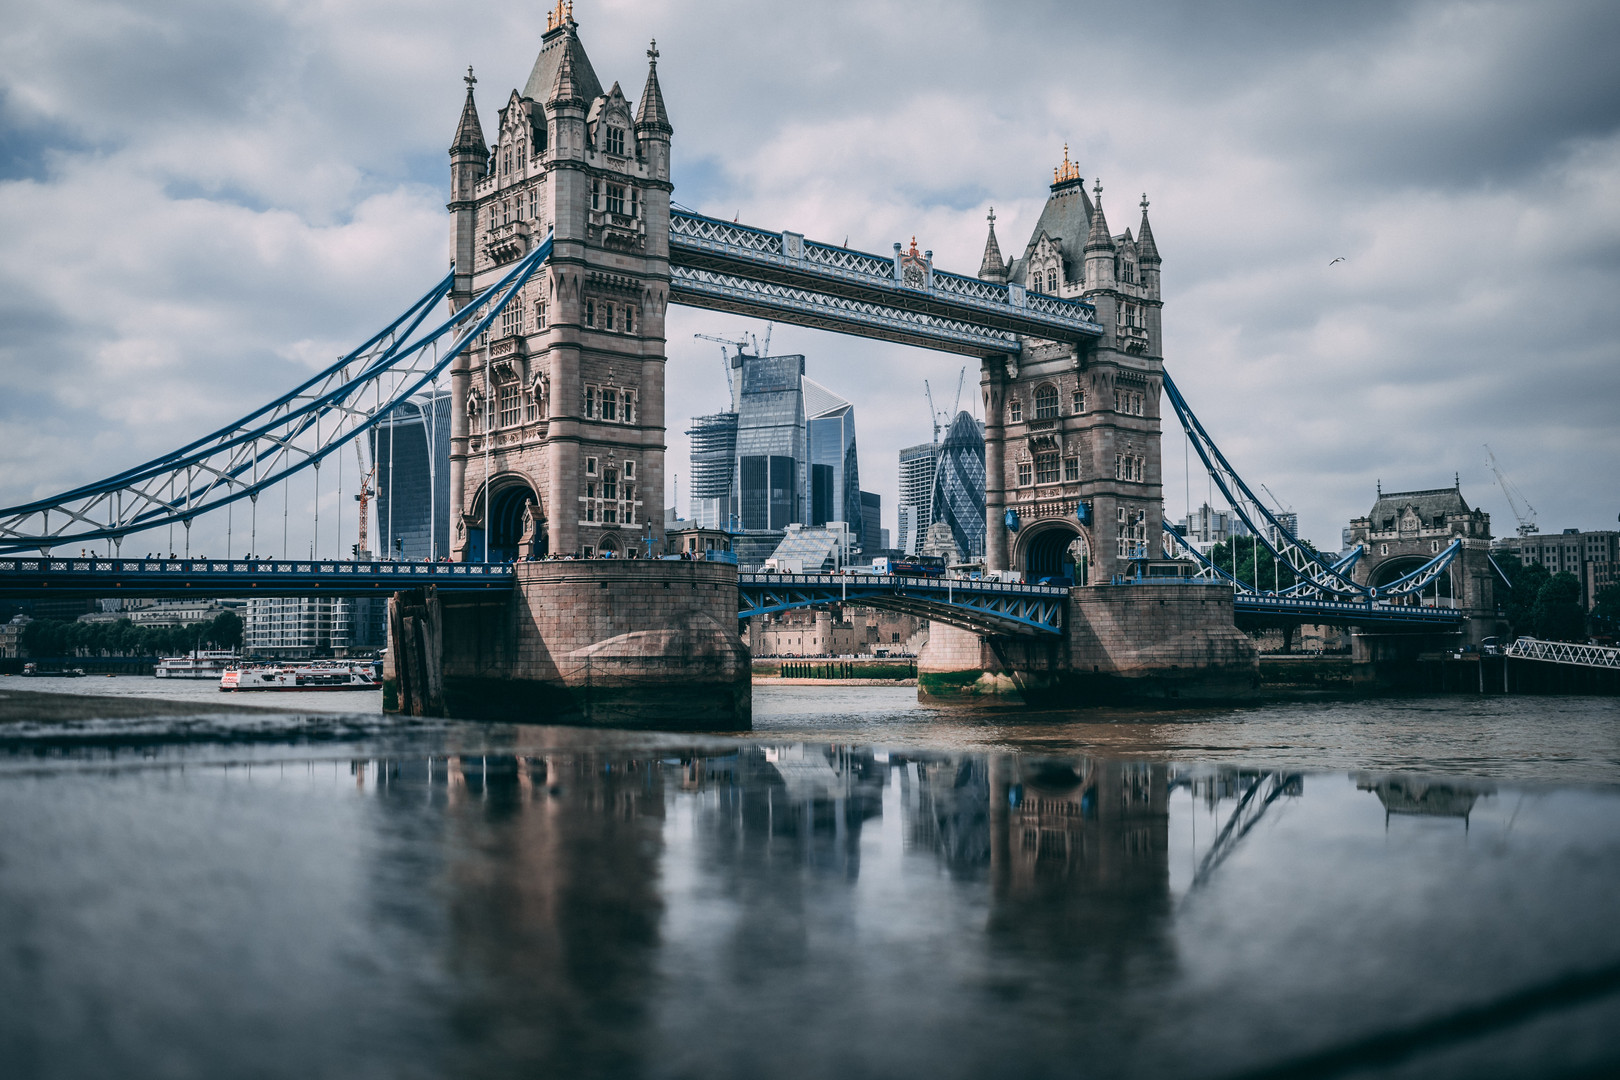 Tower Bridge. London, England